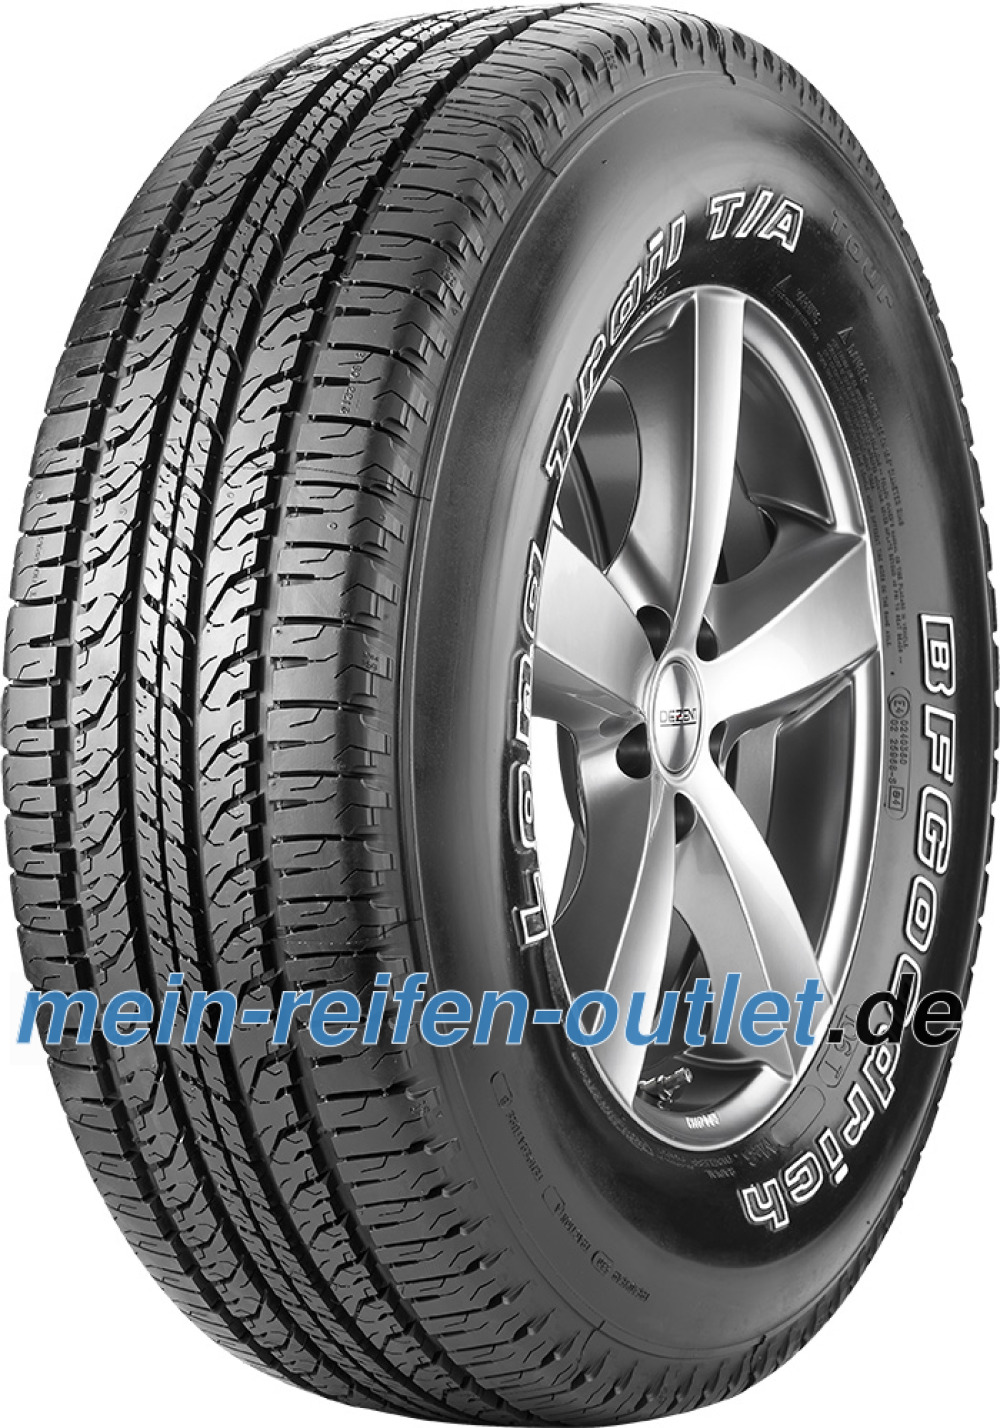 BF Goodrich Long Trail T/A Tour ( P235/70 R17 108T XL )